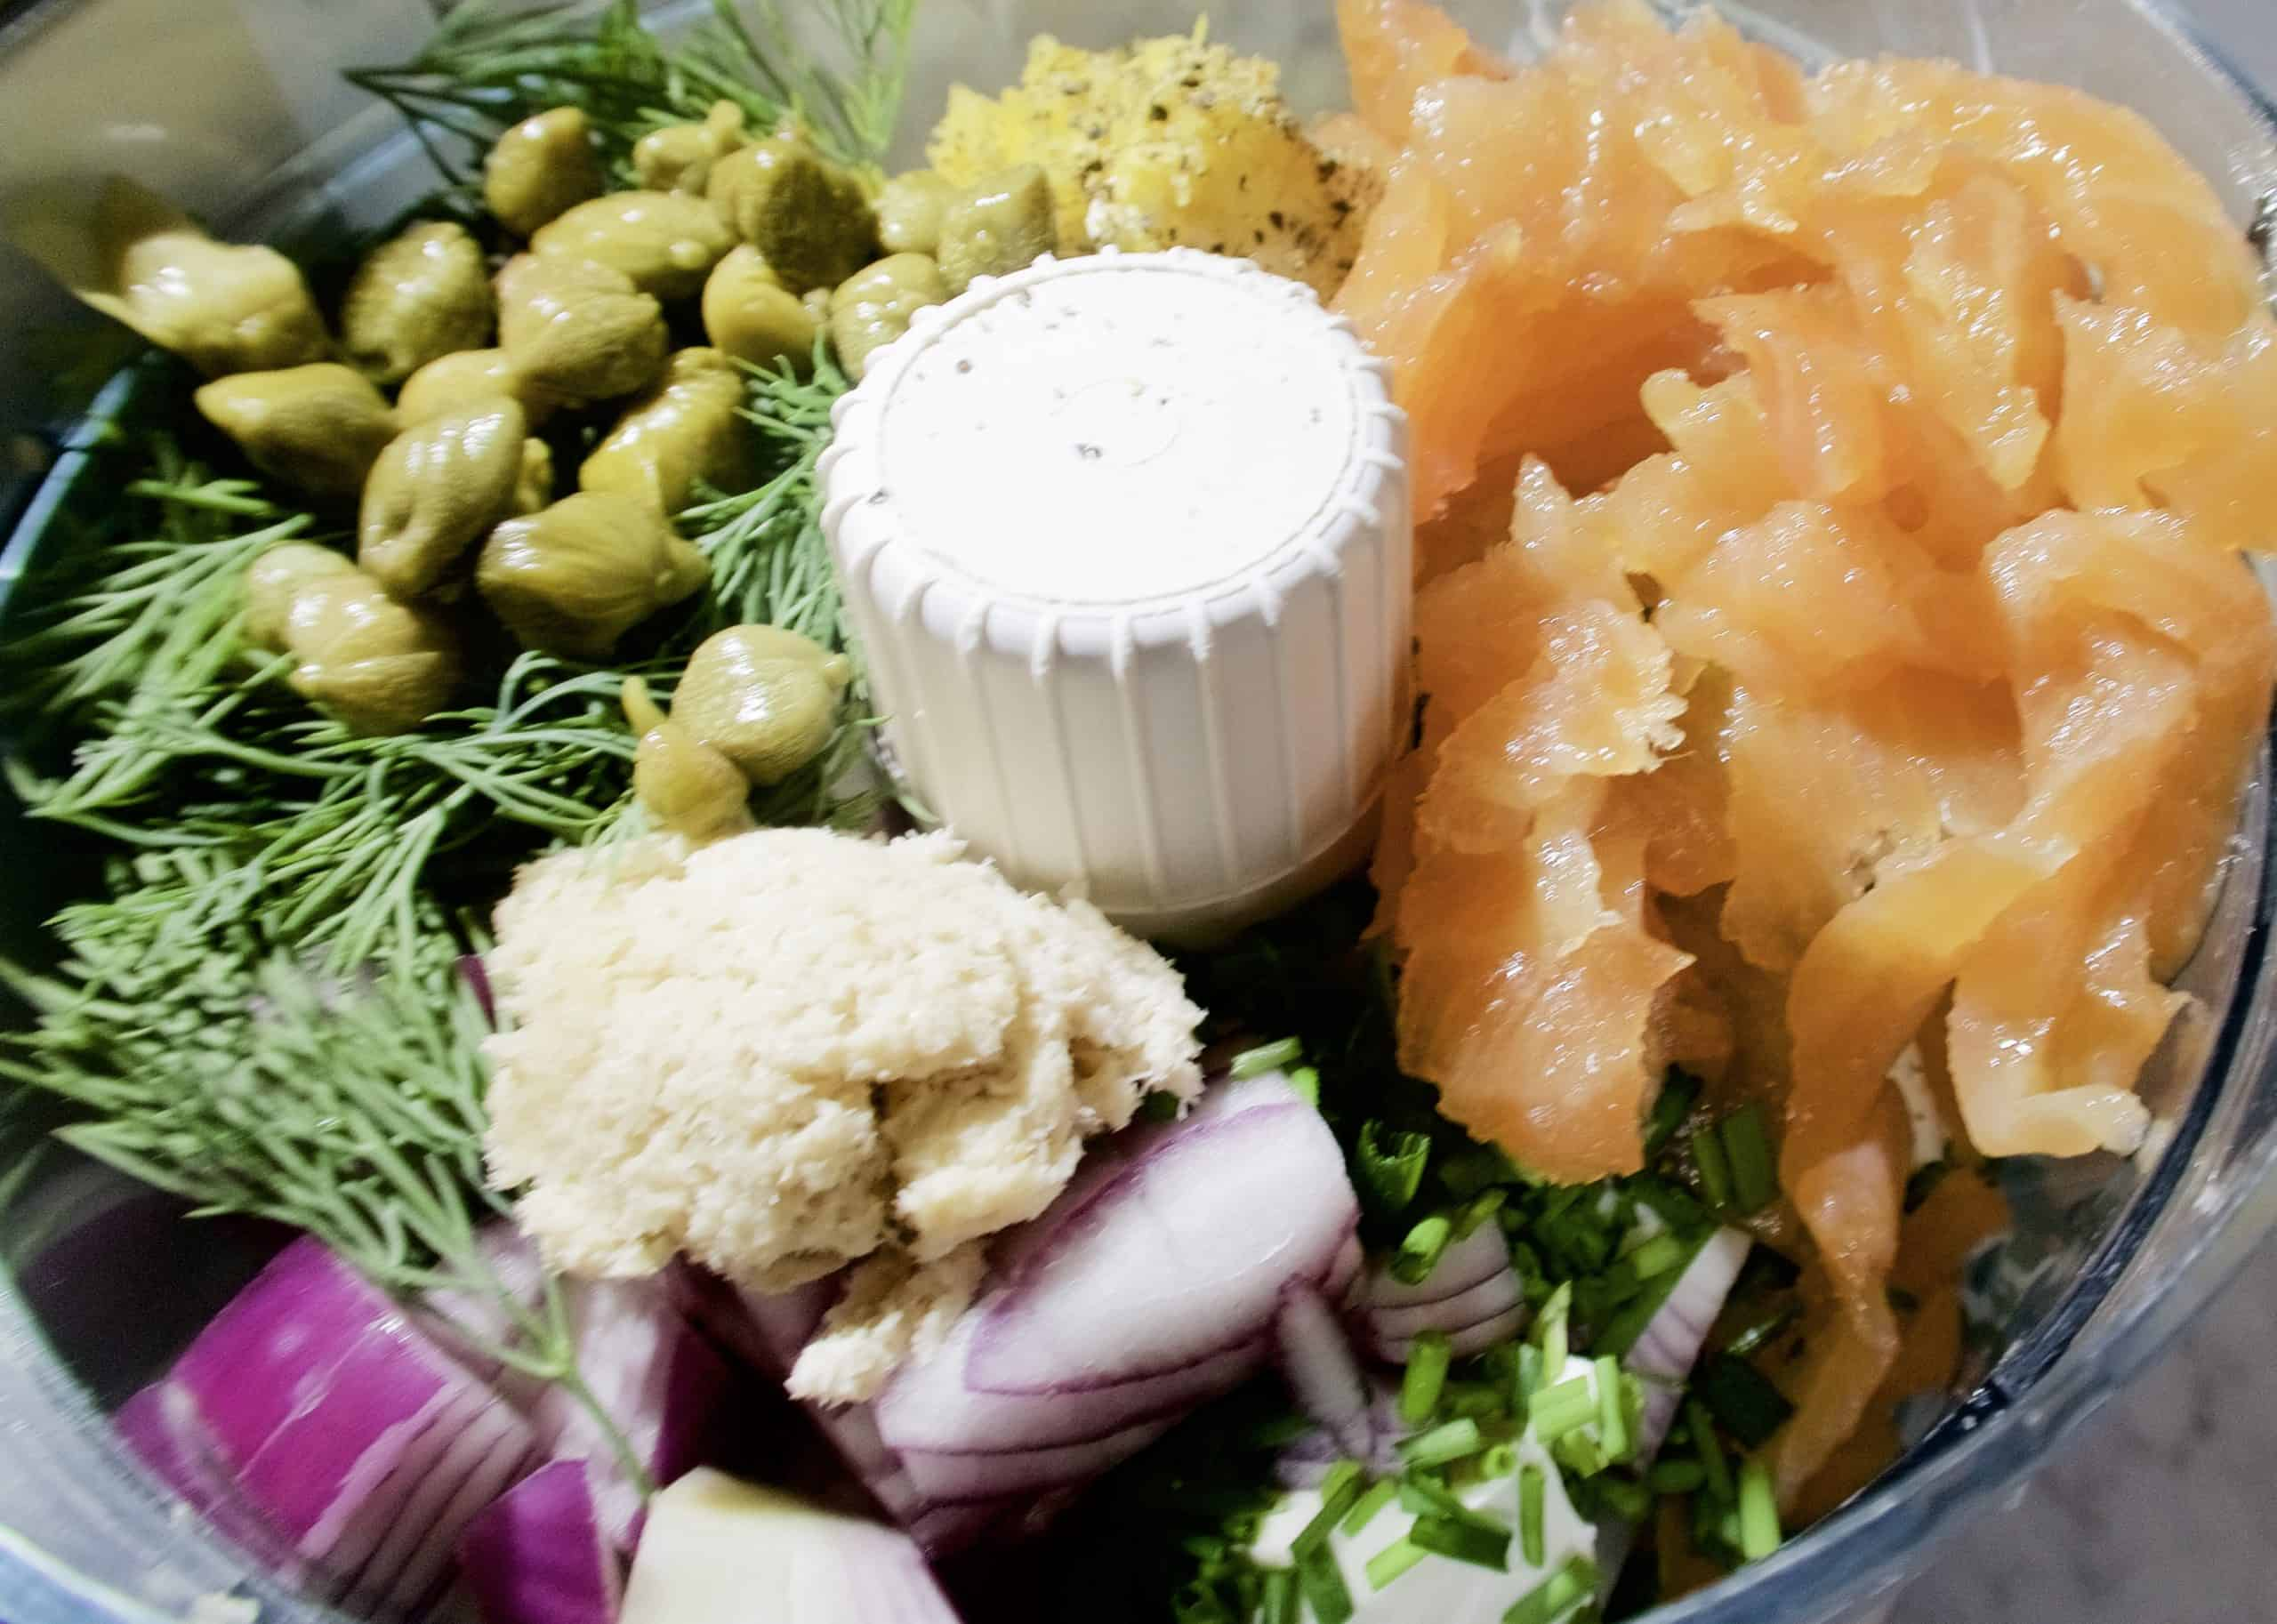 smoked salmon pate with ingredients in food processor bowl